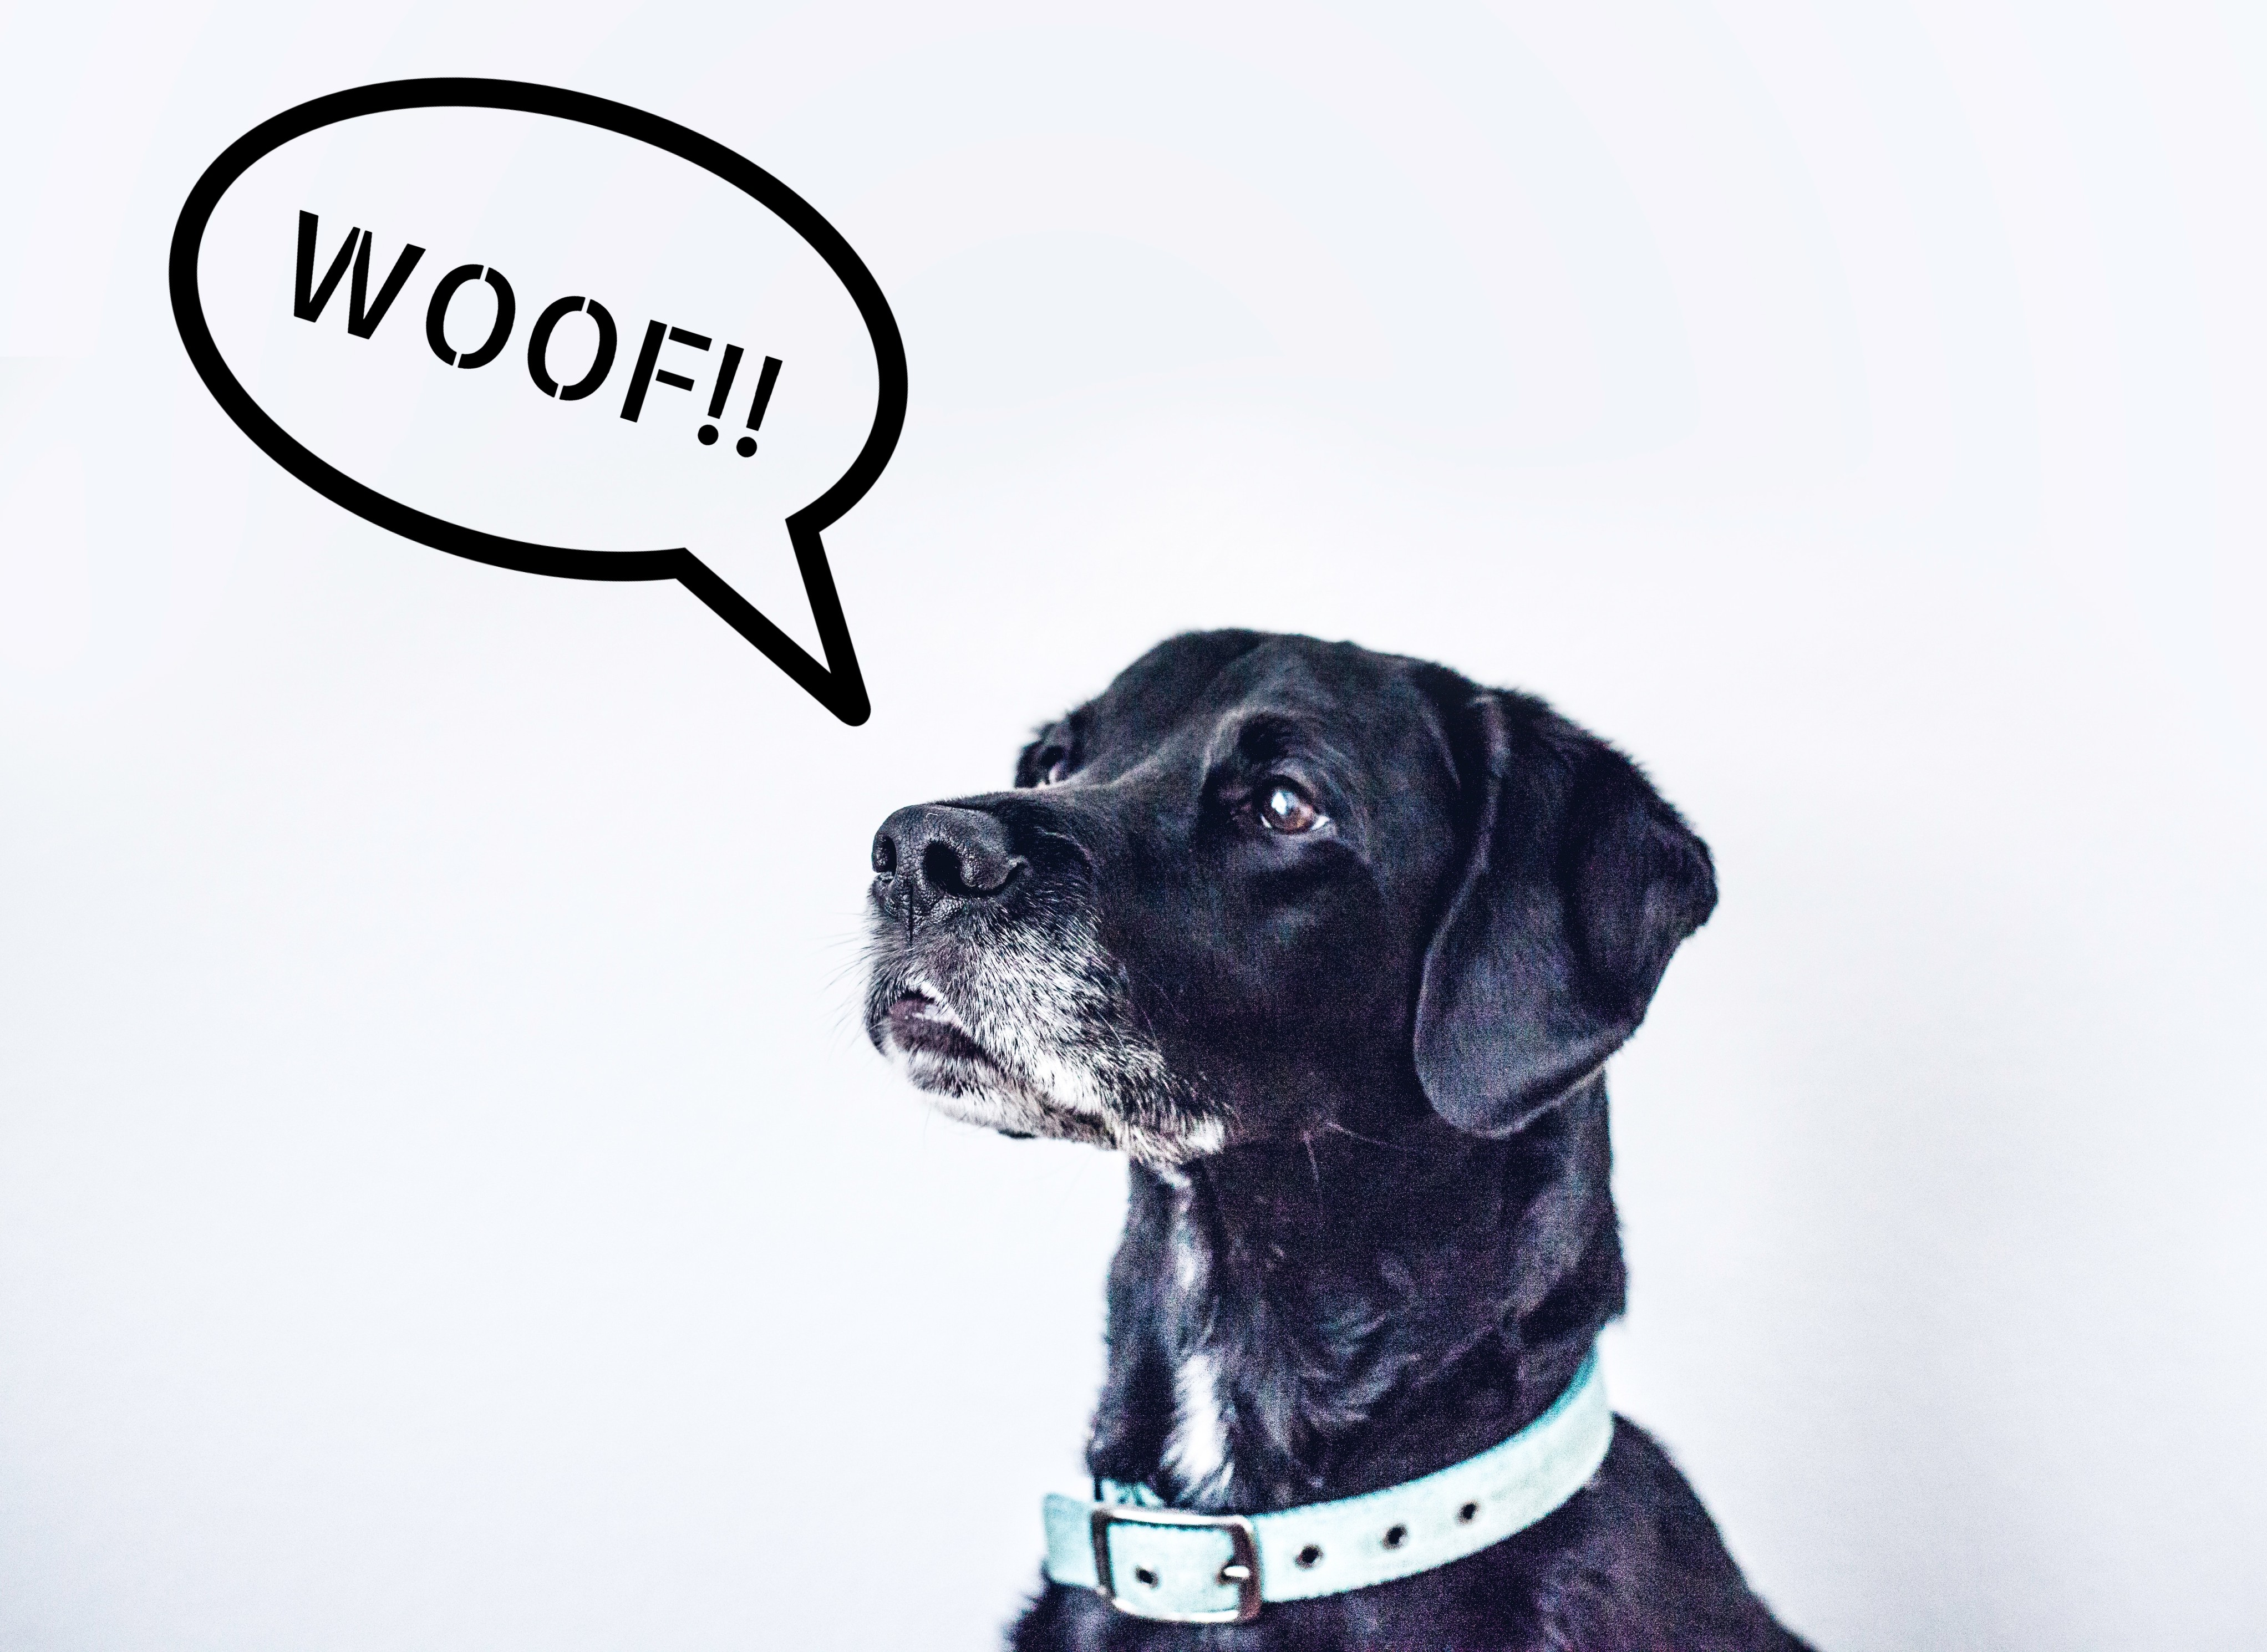 Final results - Dog image with speech bubble, added text saying WOOF